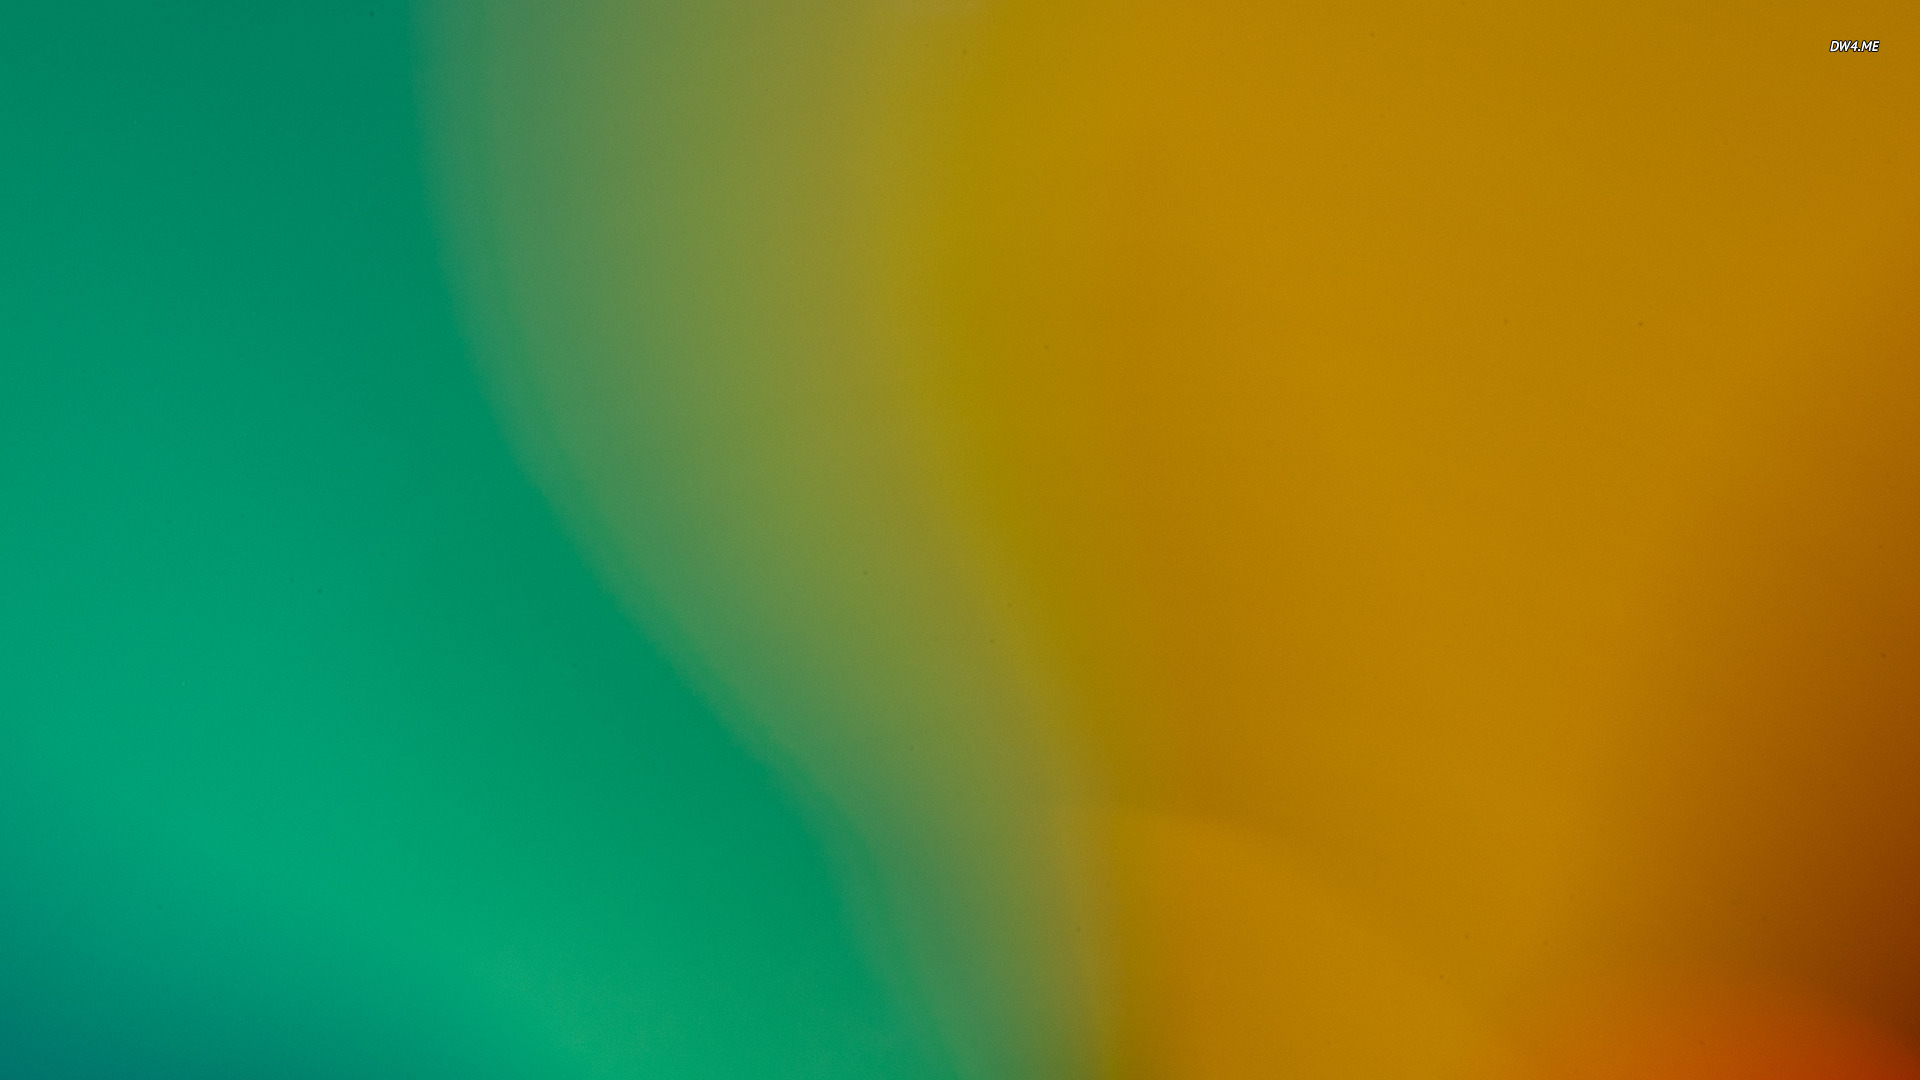 Green and yellow gradient wallpaper   Abstract wallpapers   1417 1920x1080